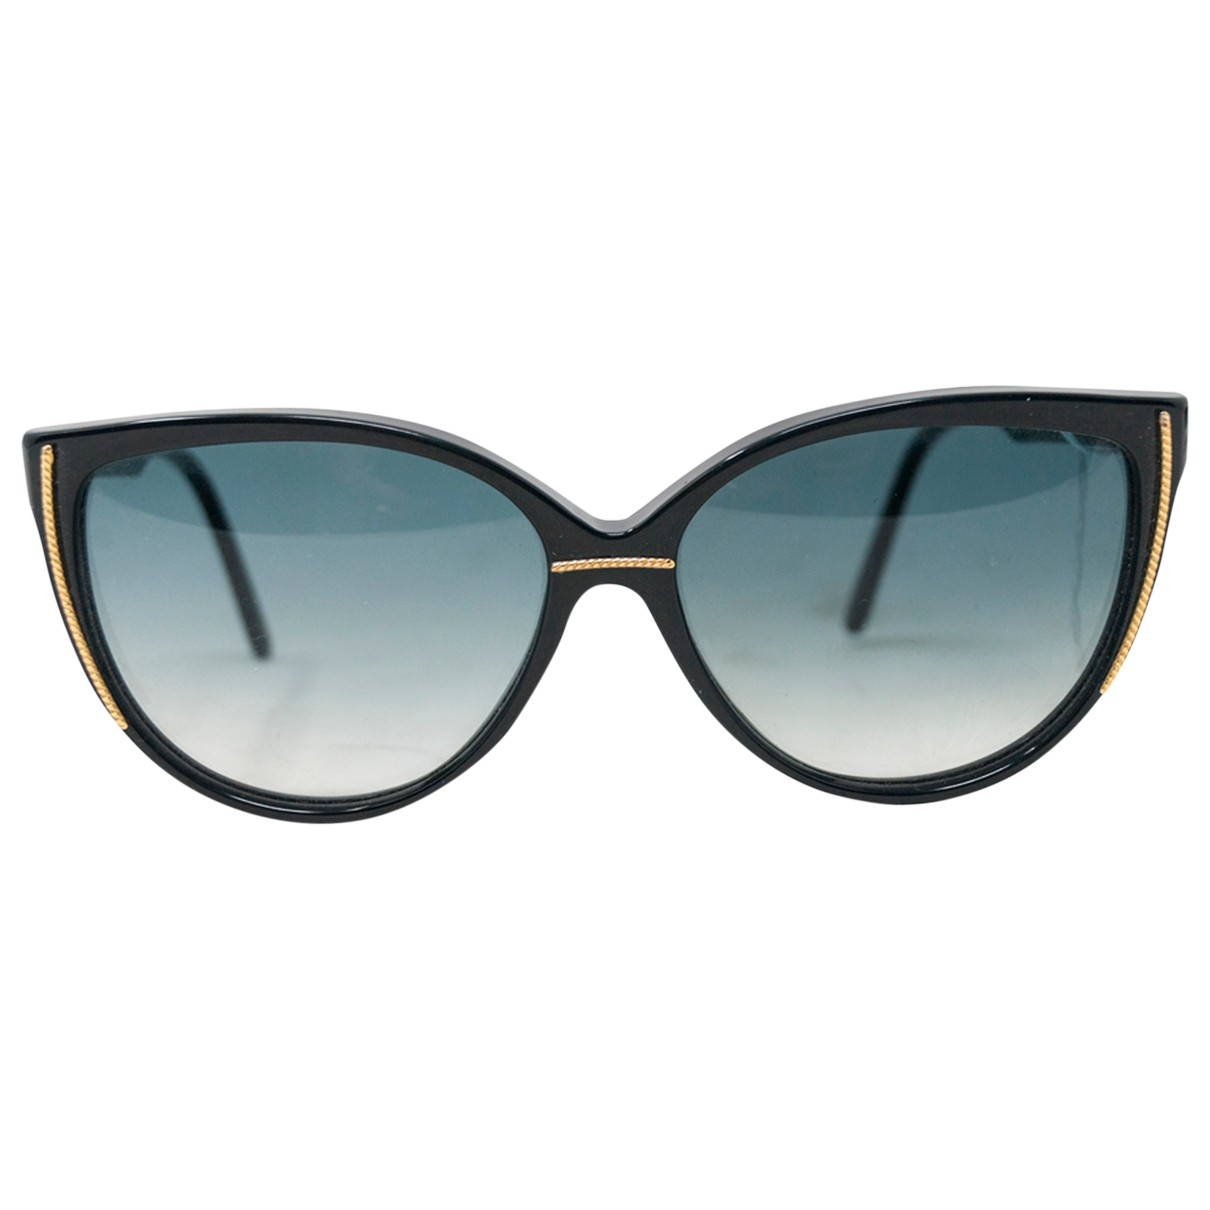 Annabella Pavia \N Black Sunglasses for Women \N